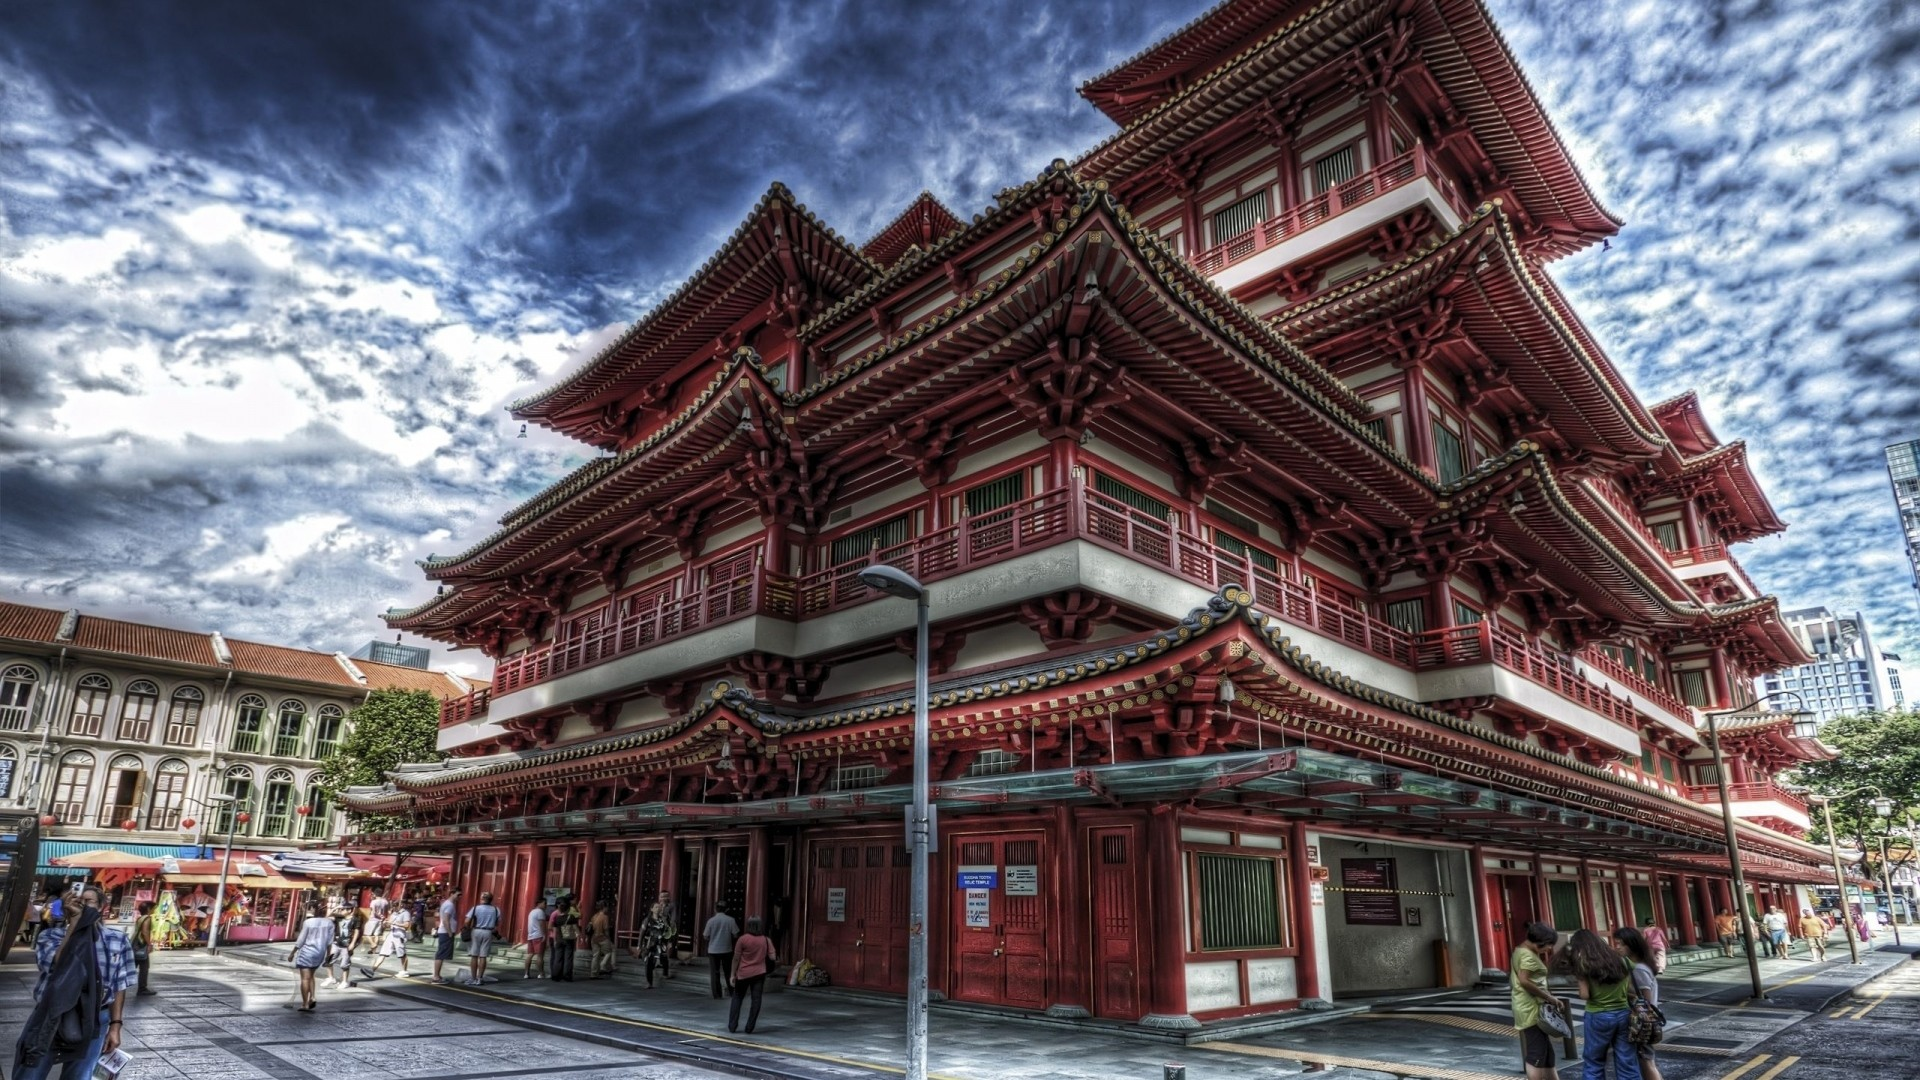 Preview wallpaper singapore, chinatown, buddha, tooth relic, temple  1920×1080